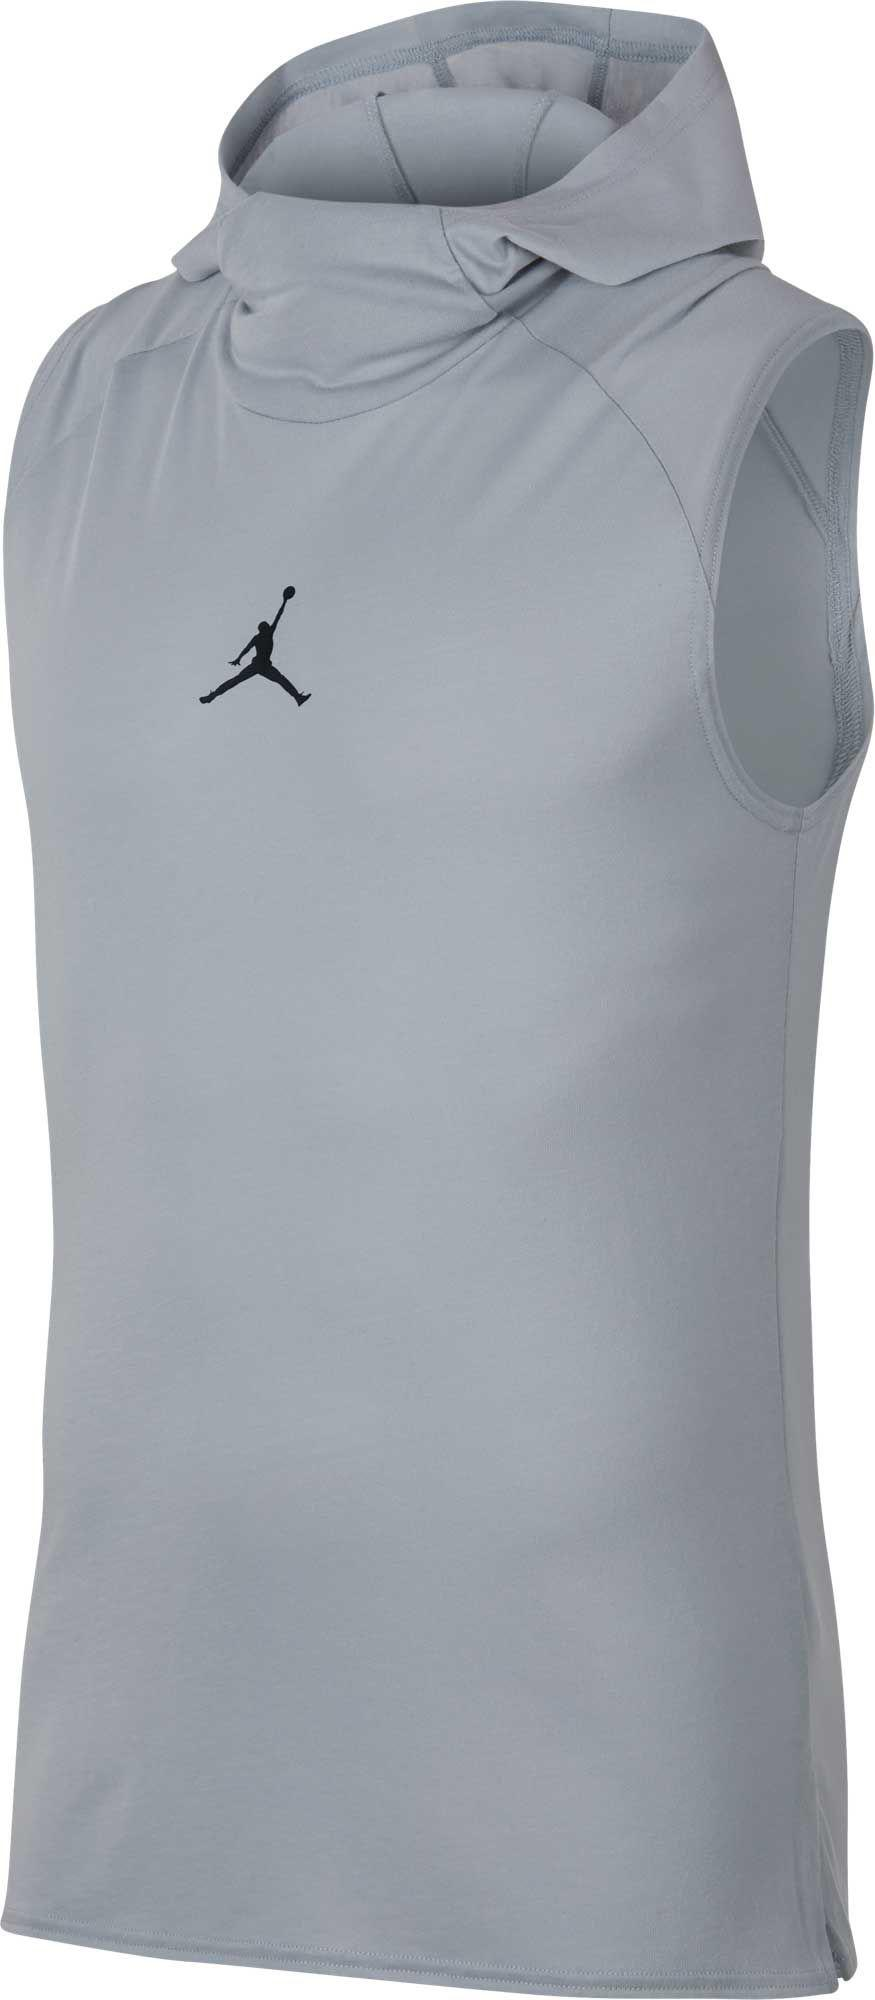 810a92e5cc7539 Lyst - Nike Jordan Dry 23 Alpha Hooded Sleeveless Tank Top in Gray ...